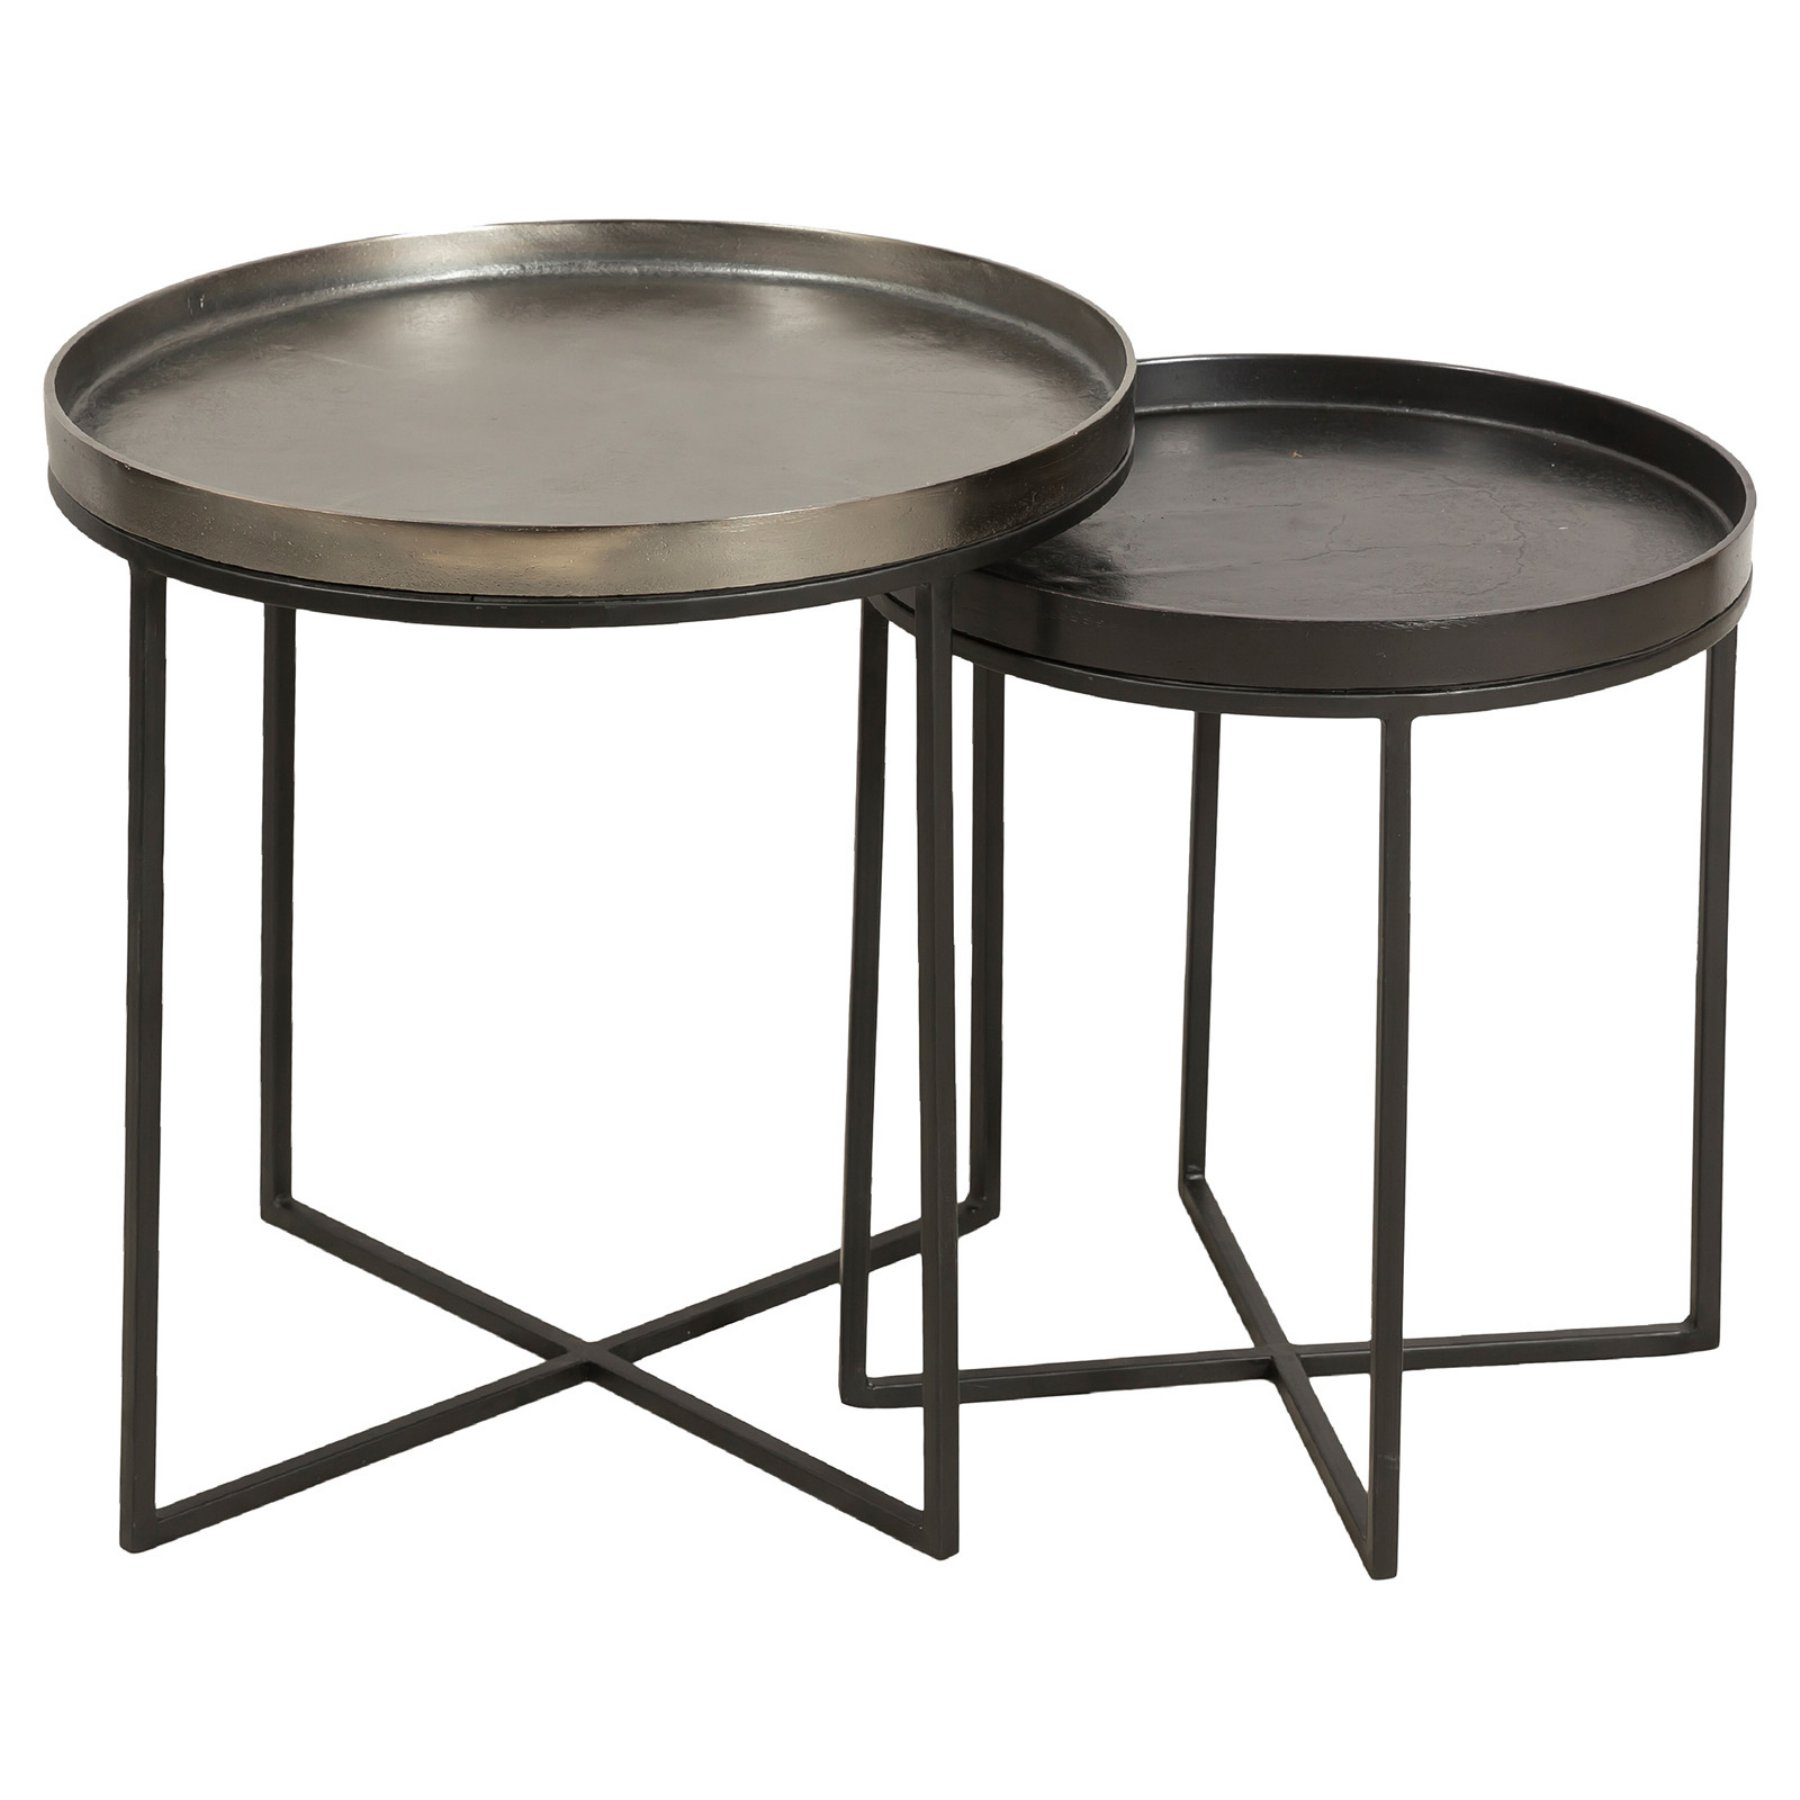 Renwil Conerick End Table Set Of 2 Coffee Table Metal Frame